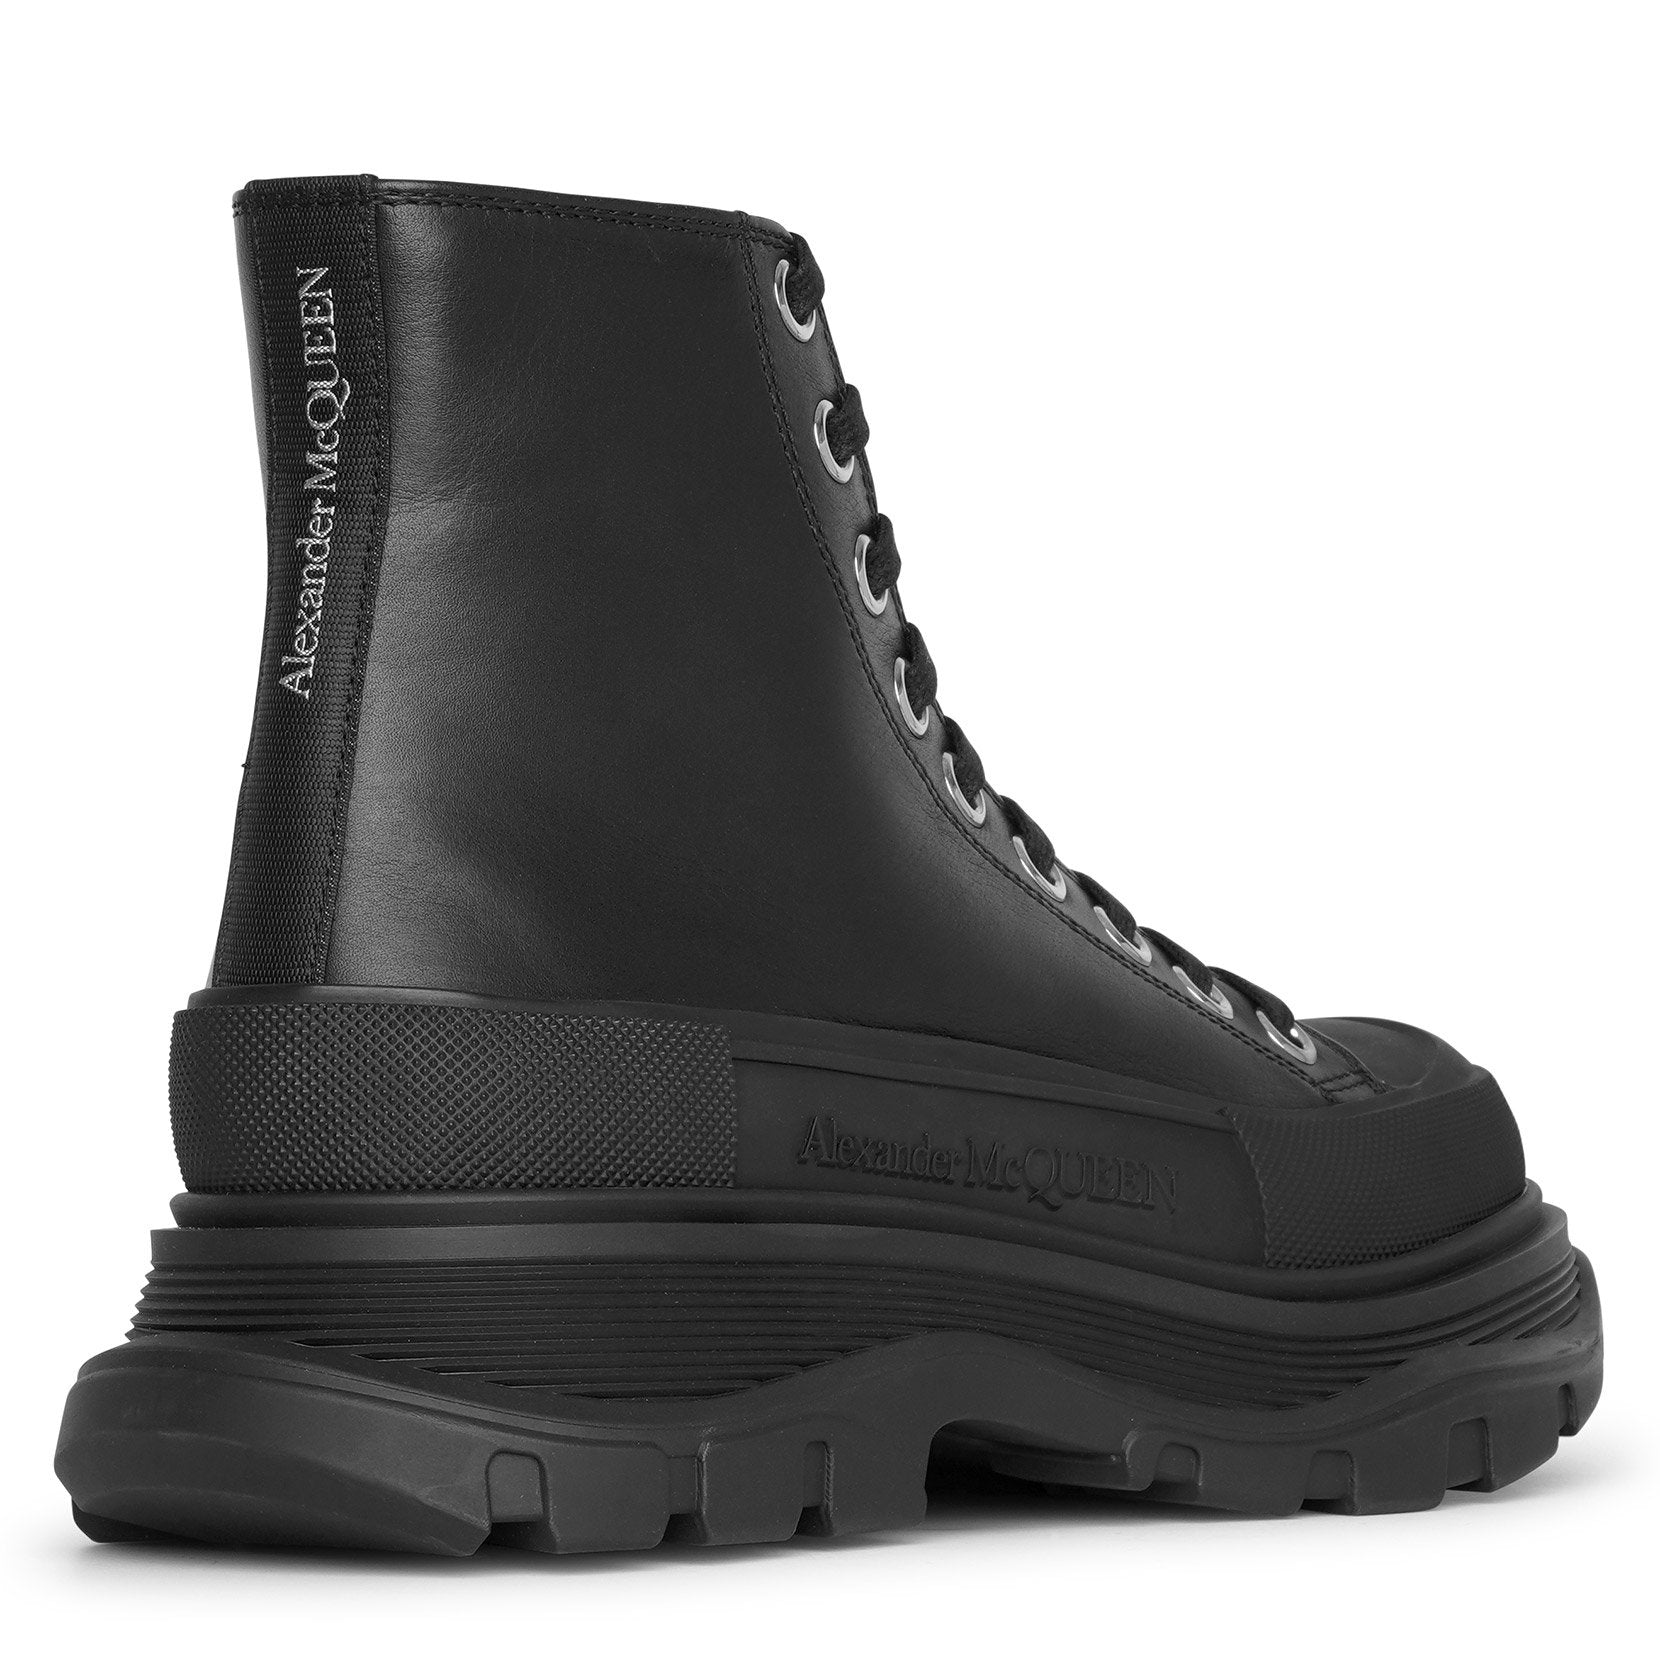 Tread slick high-top black leather boots